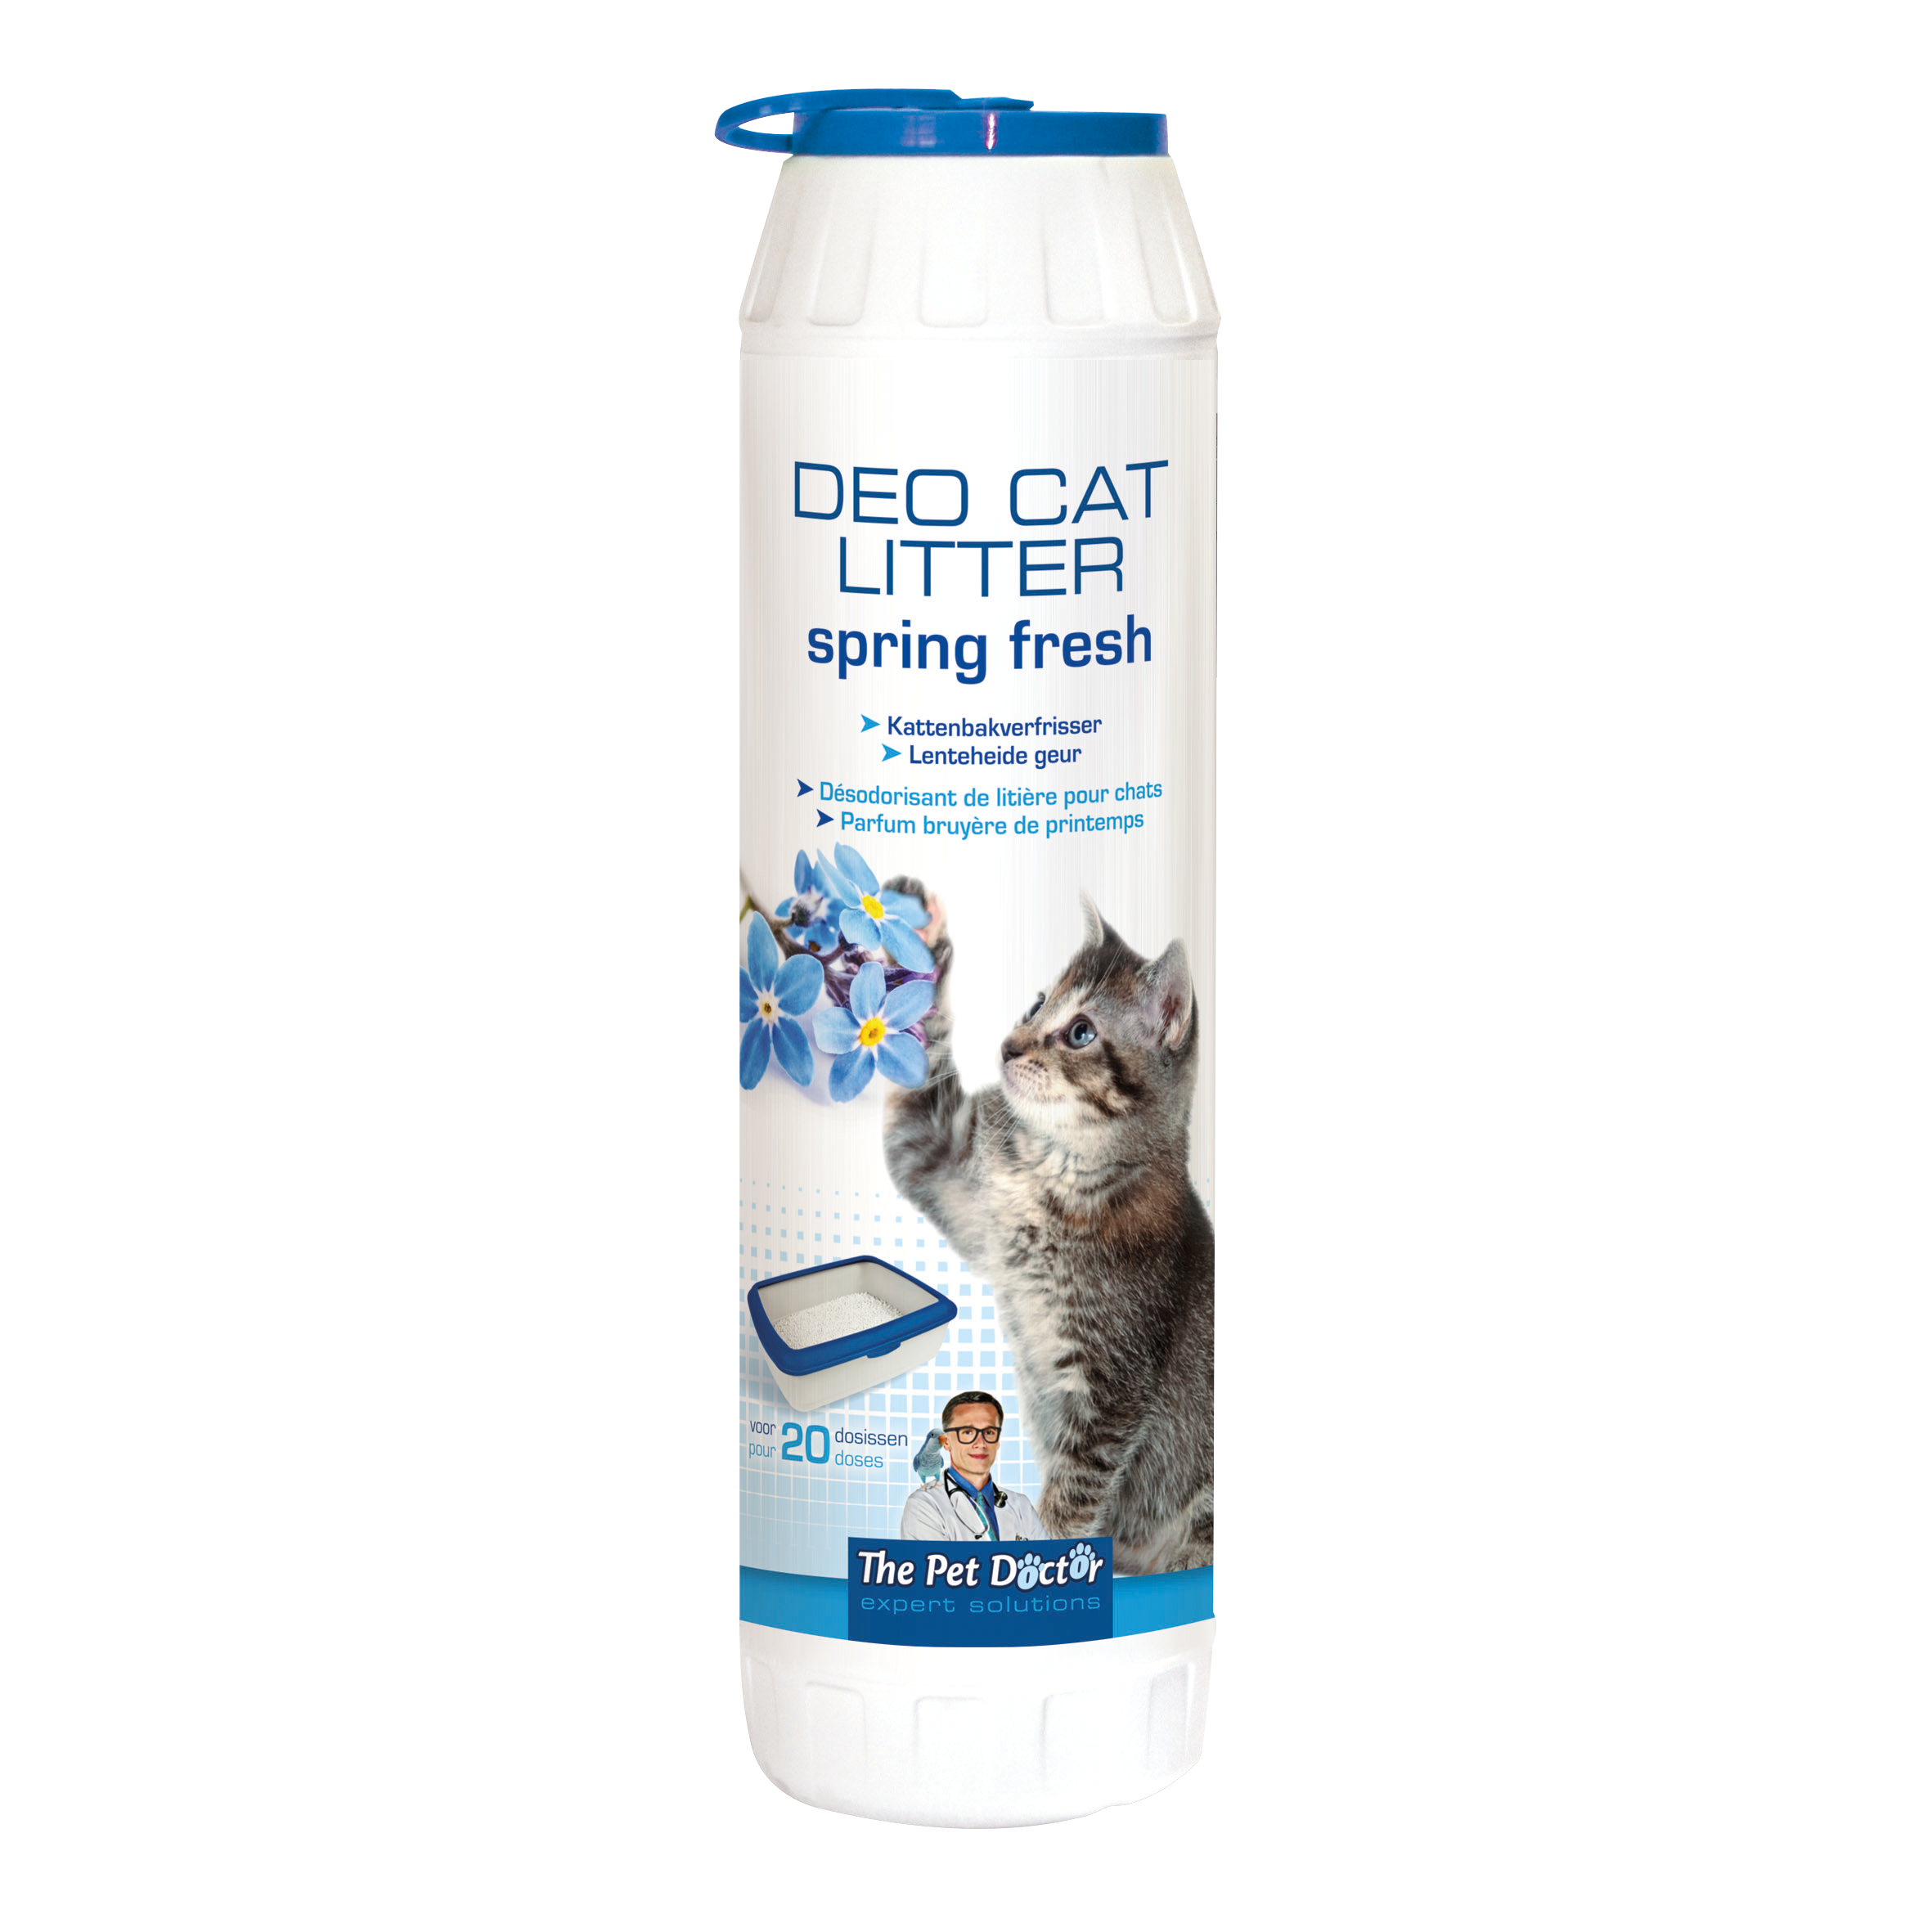 The Pet Doctor Deo Cat Litter Spring Fresh 750 g image